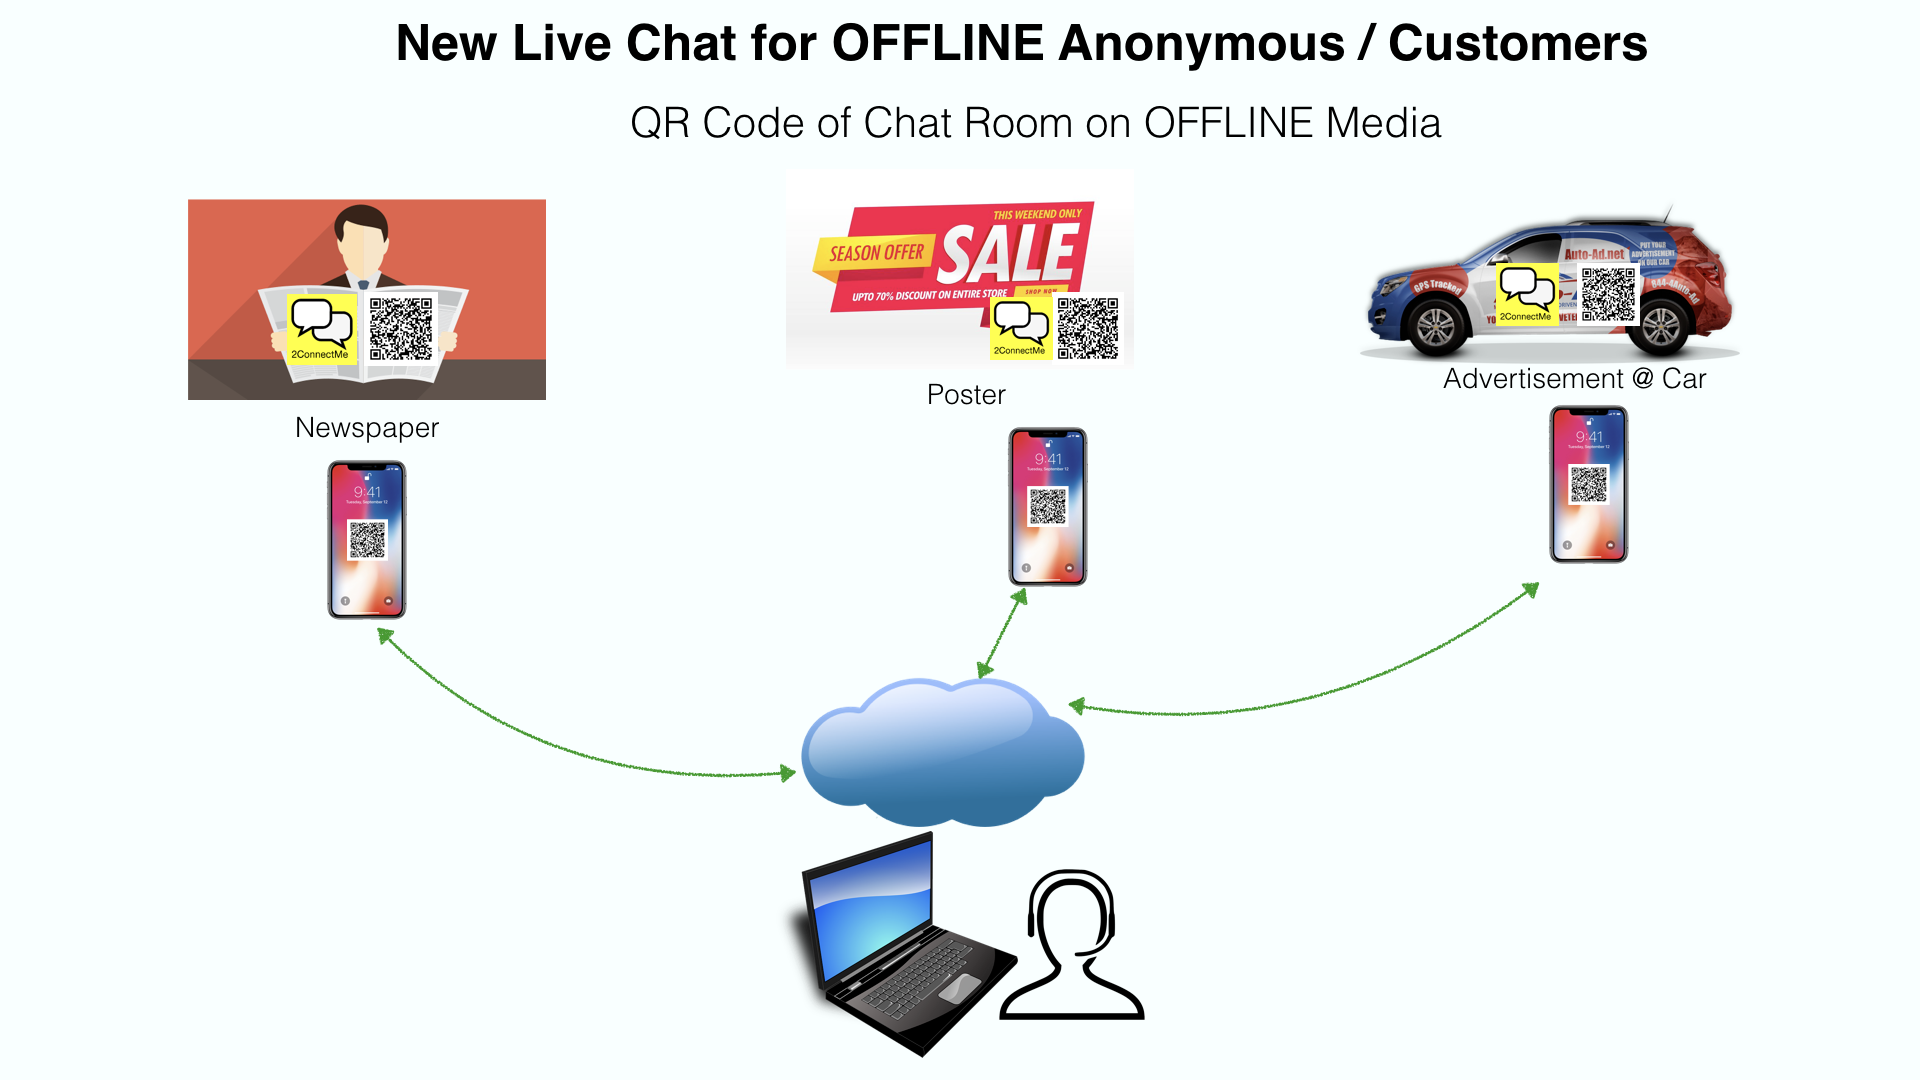 Contact Form (Live Chat) Pop Up On Mouse Click / Hover.